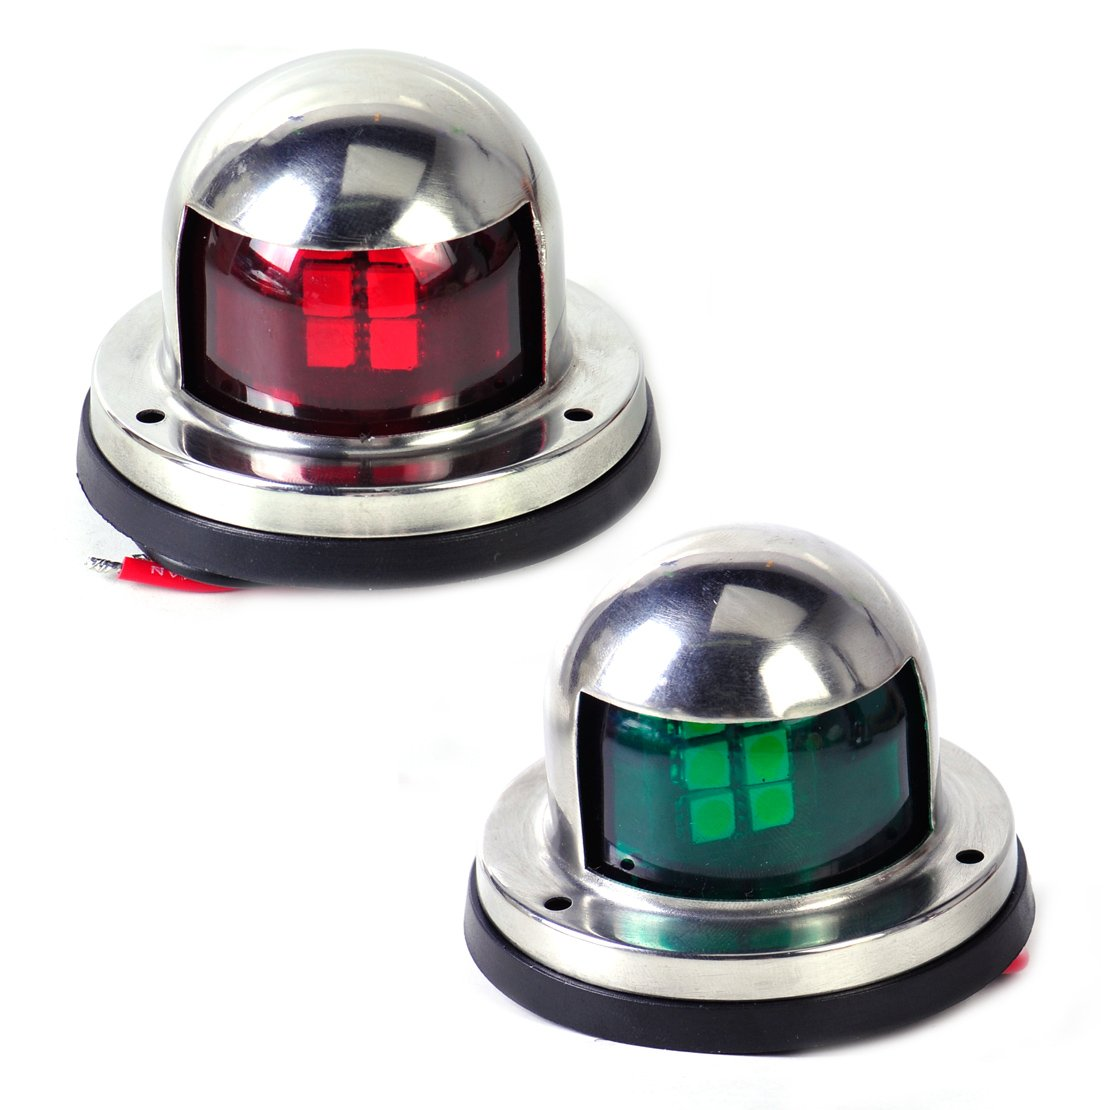 1 Pair 12V LED Bow Navigation Light Red Green Stainless Steel Marine Boat Yacht eastar